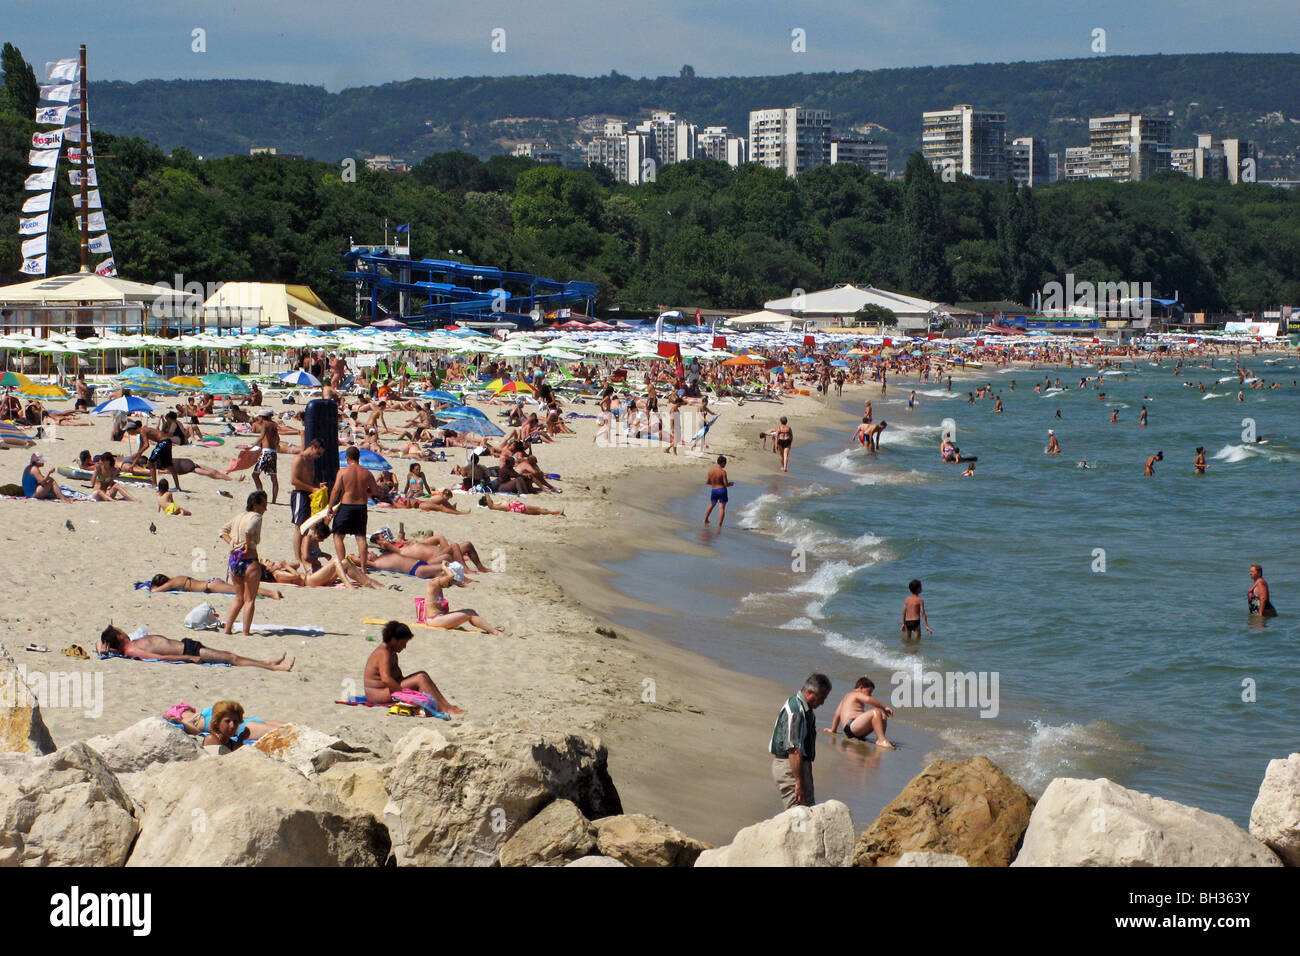 varna chatrooms Search bulgaria chat rooms within the internet relay chat search bulgaria in chat room topics of around 500 irc networks current chat rooms: bulgaria, refugiabulgaria, bulgaria, bulgaria, bulgaria, bulgaria, bulgaria, bulgaria, bulgaria, ethnicabulgaria.